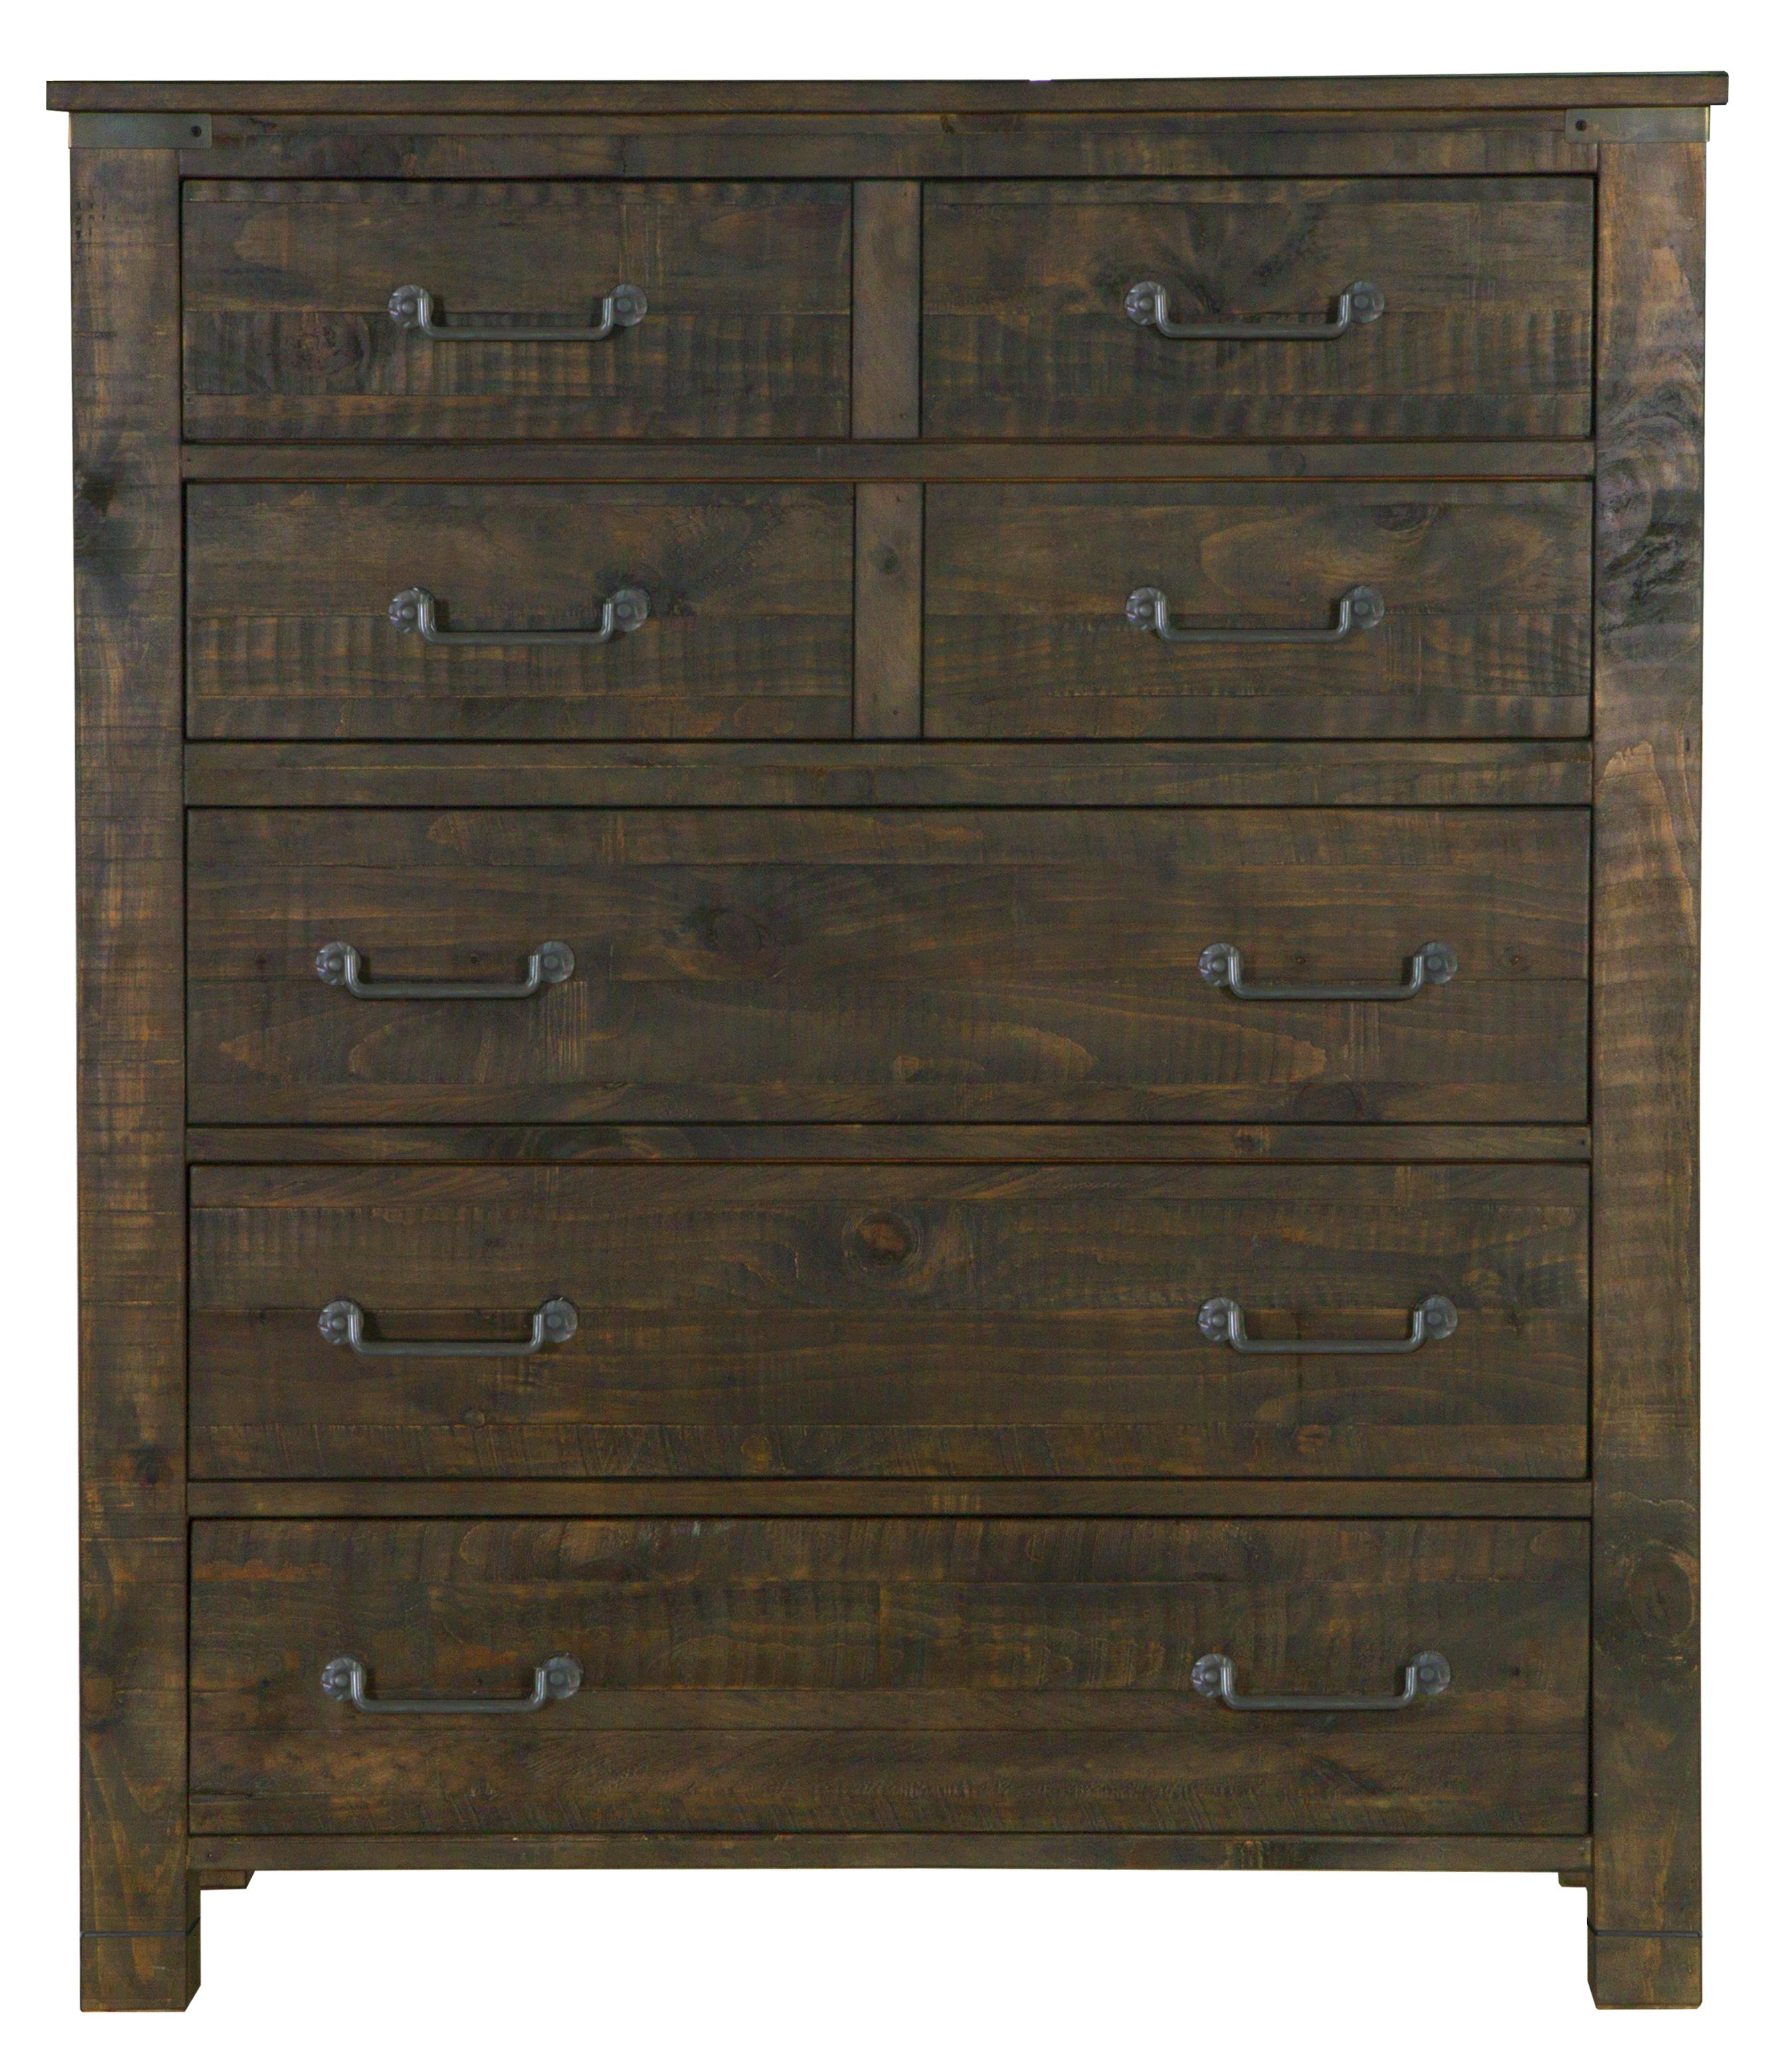 Five Drawer Chest in Rustic Pine Finish